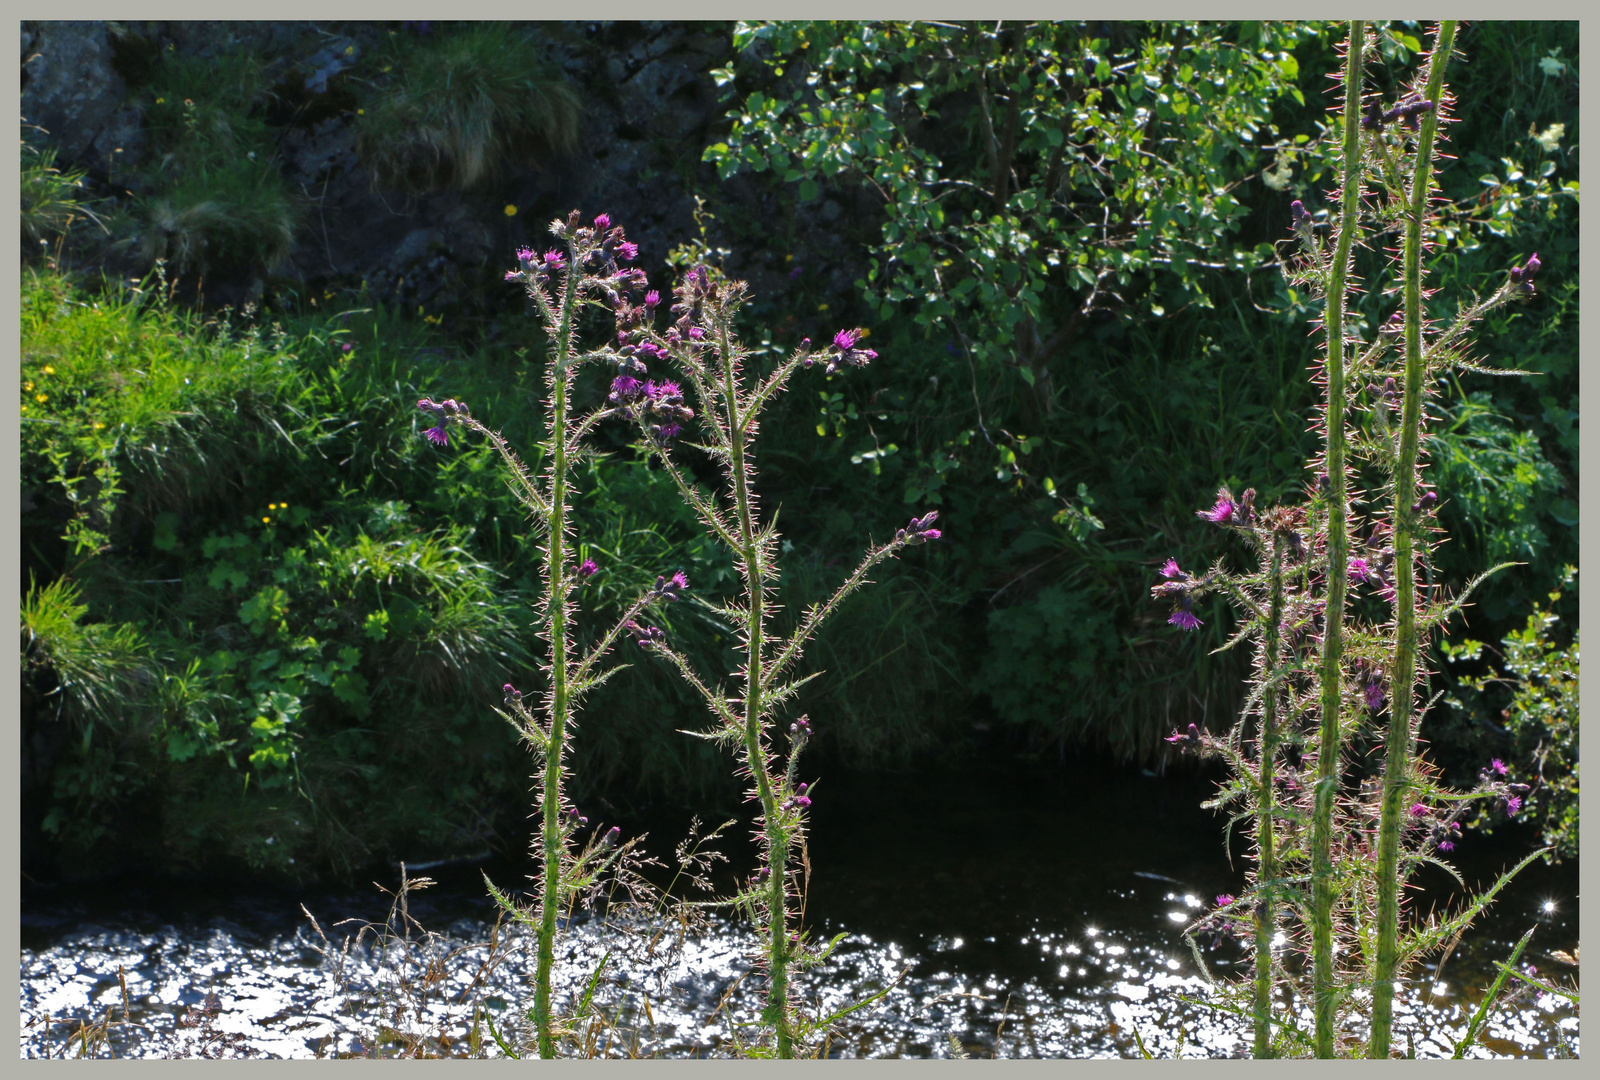 thistles beside the river coquet at barrowburn